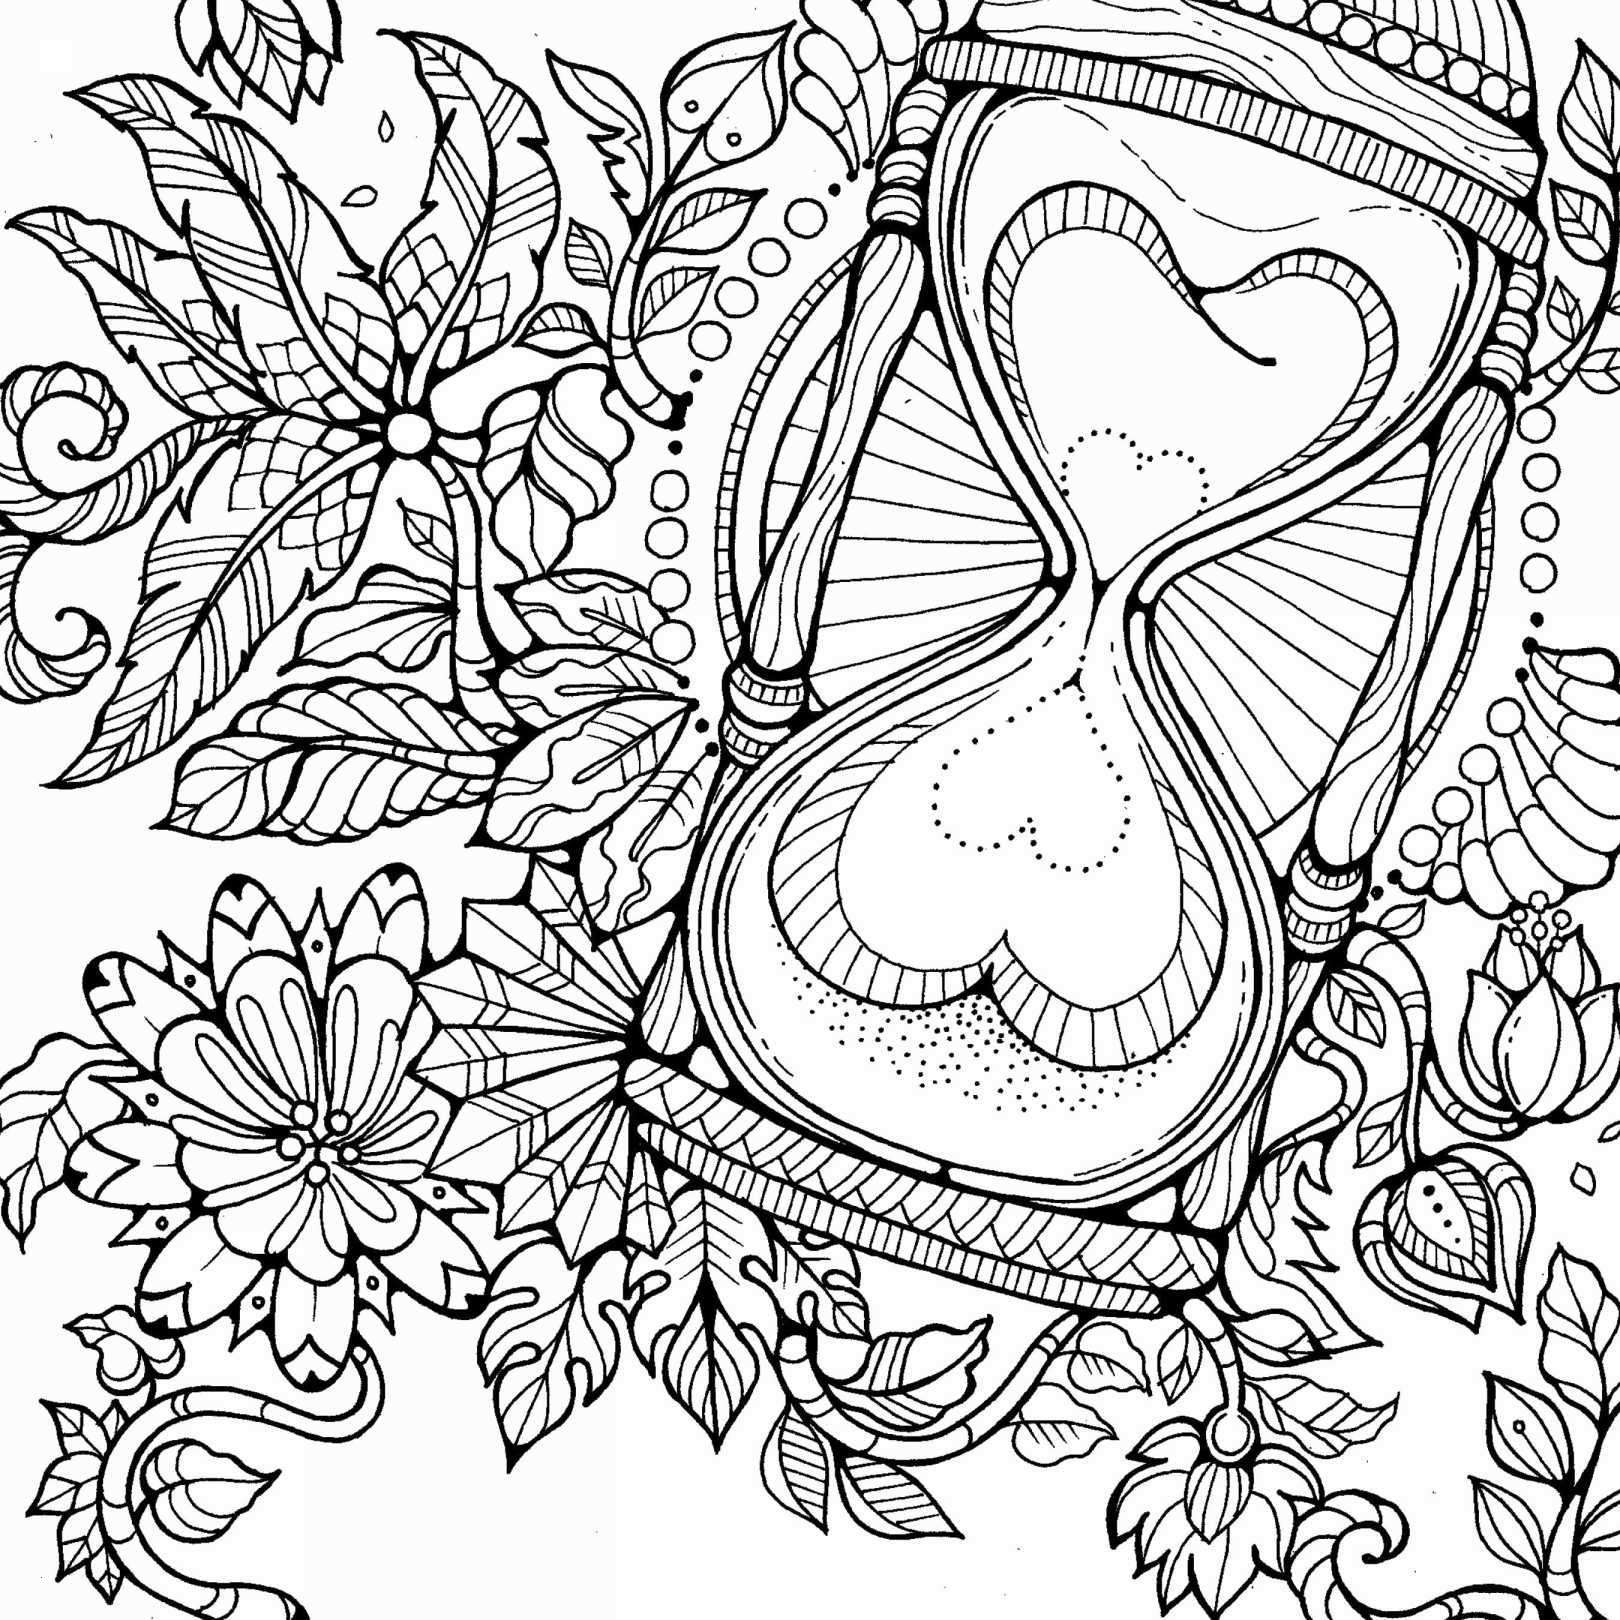 Children S Christian Christmas Coloring Pages Printable With Free For Kids 32 Fresh